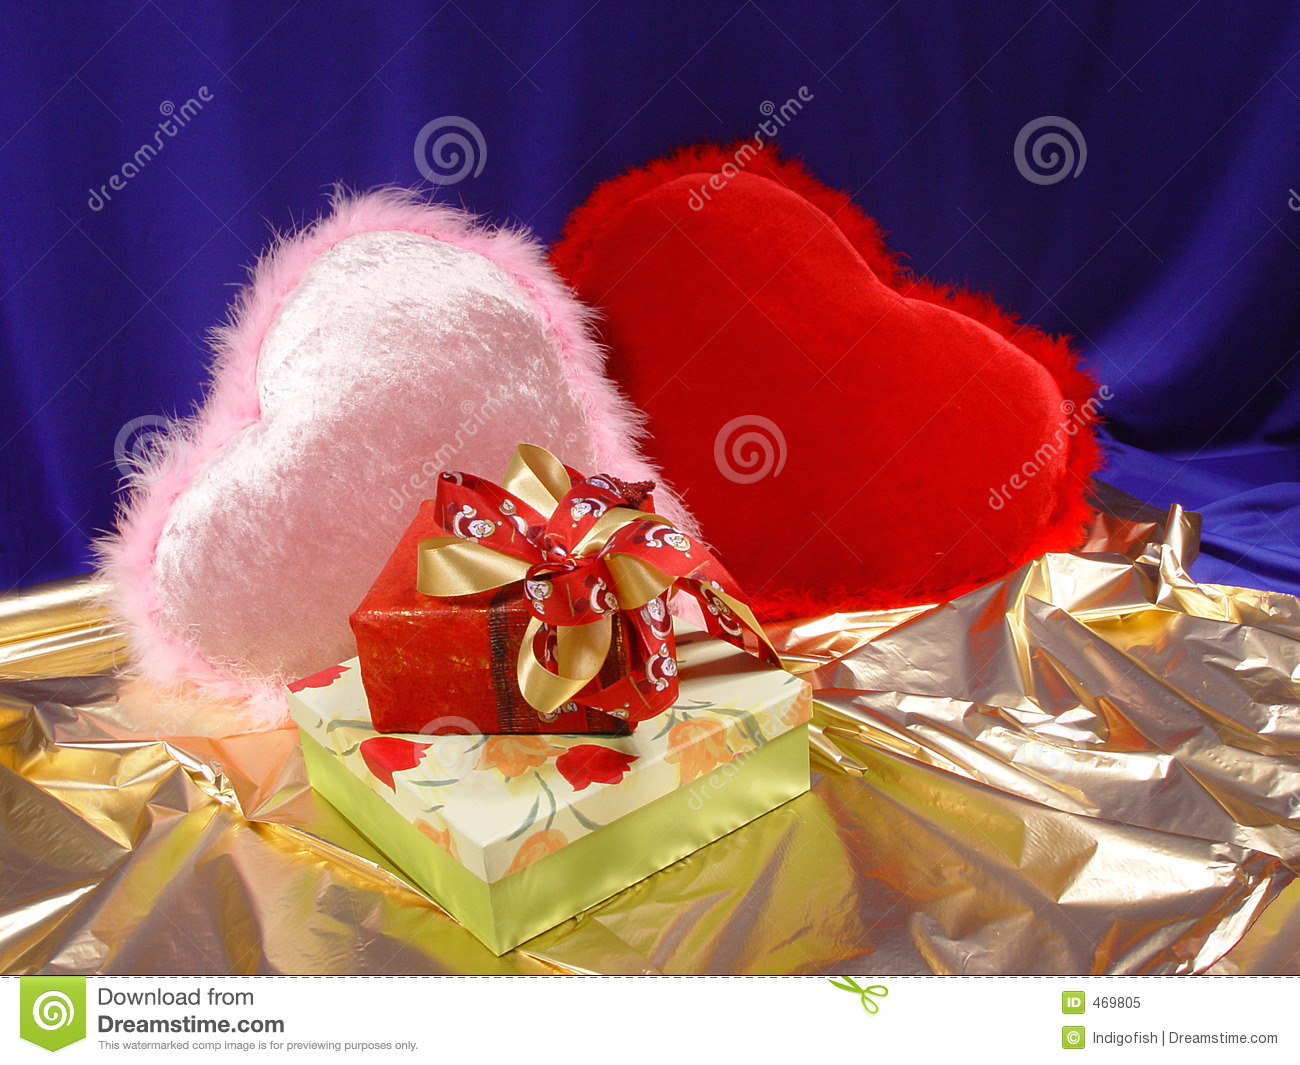 Download Valentines day stock image. Image of valentines, gift, valentine - 469805